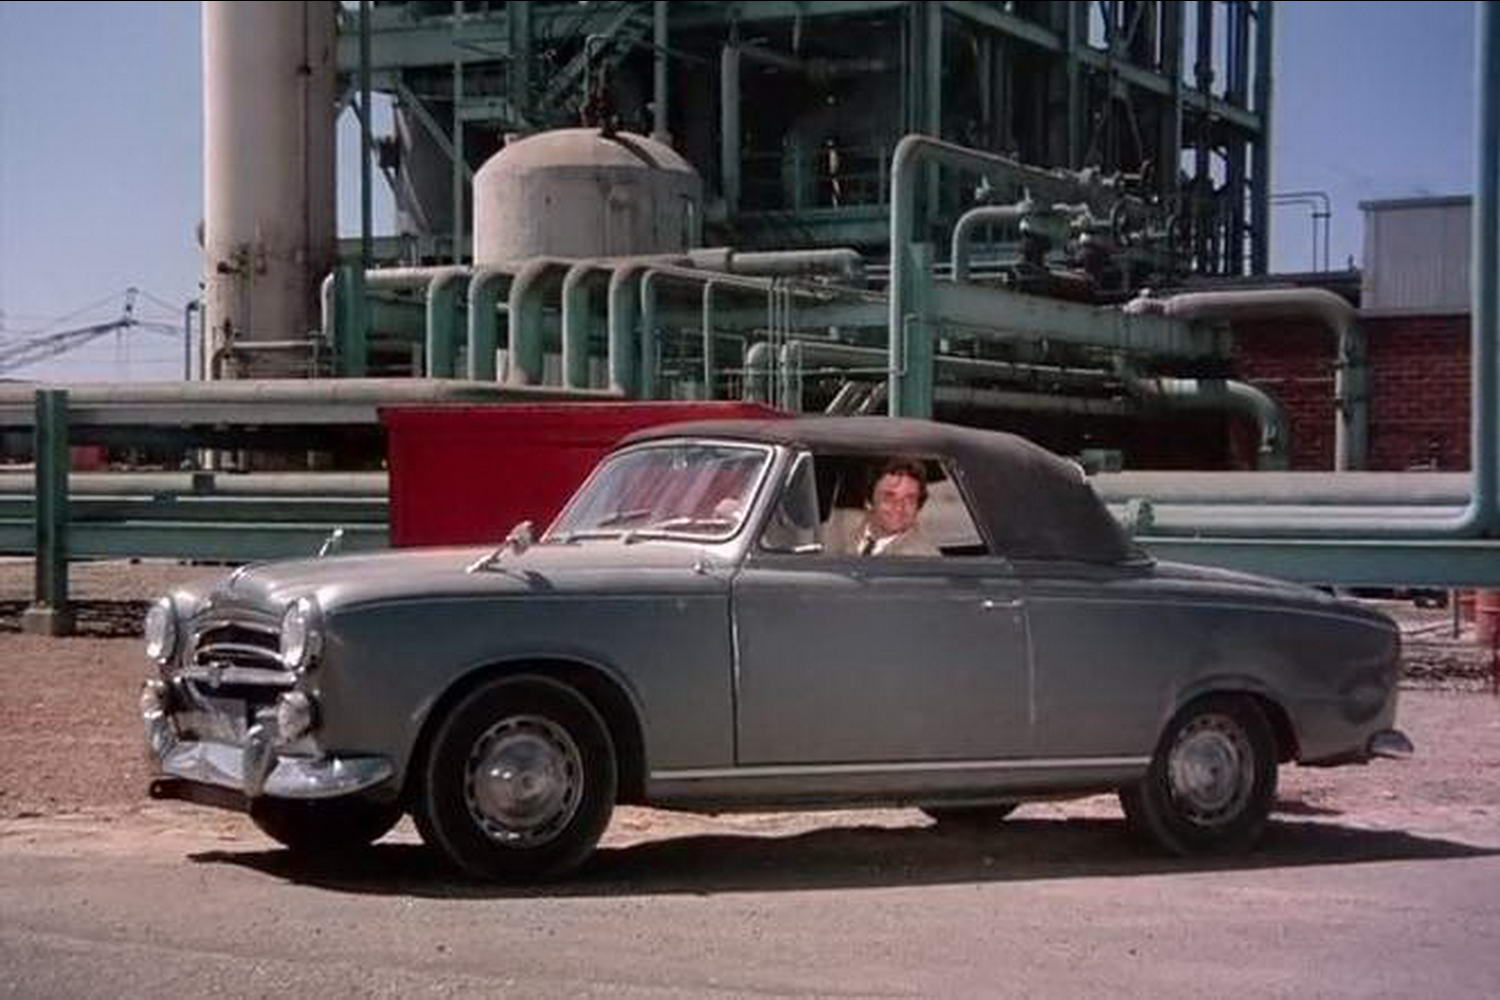 The 10 Best Worst Film and TV Cars